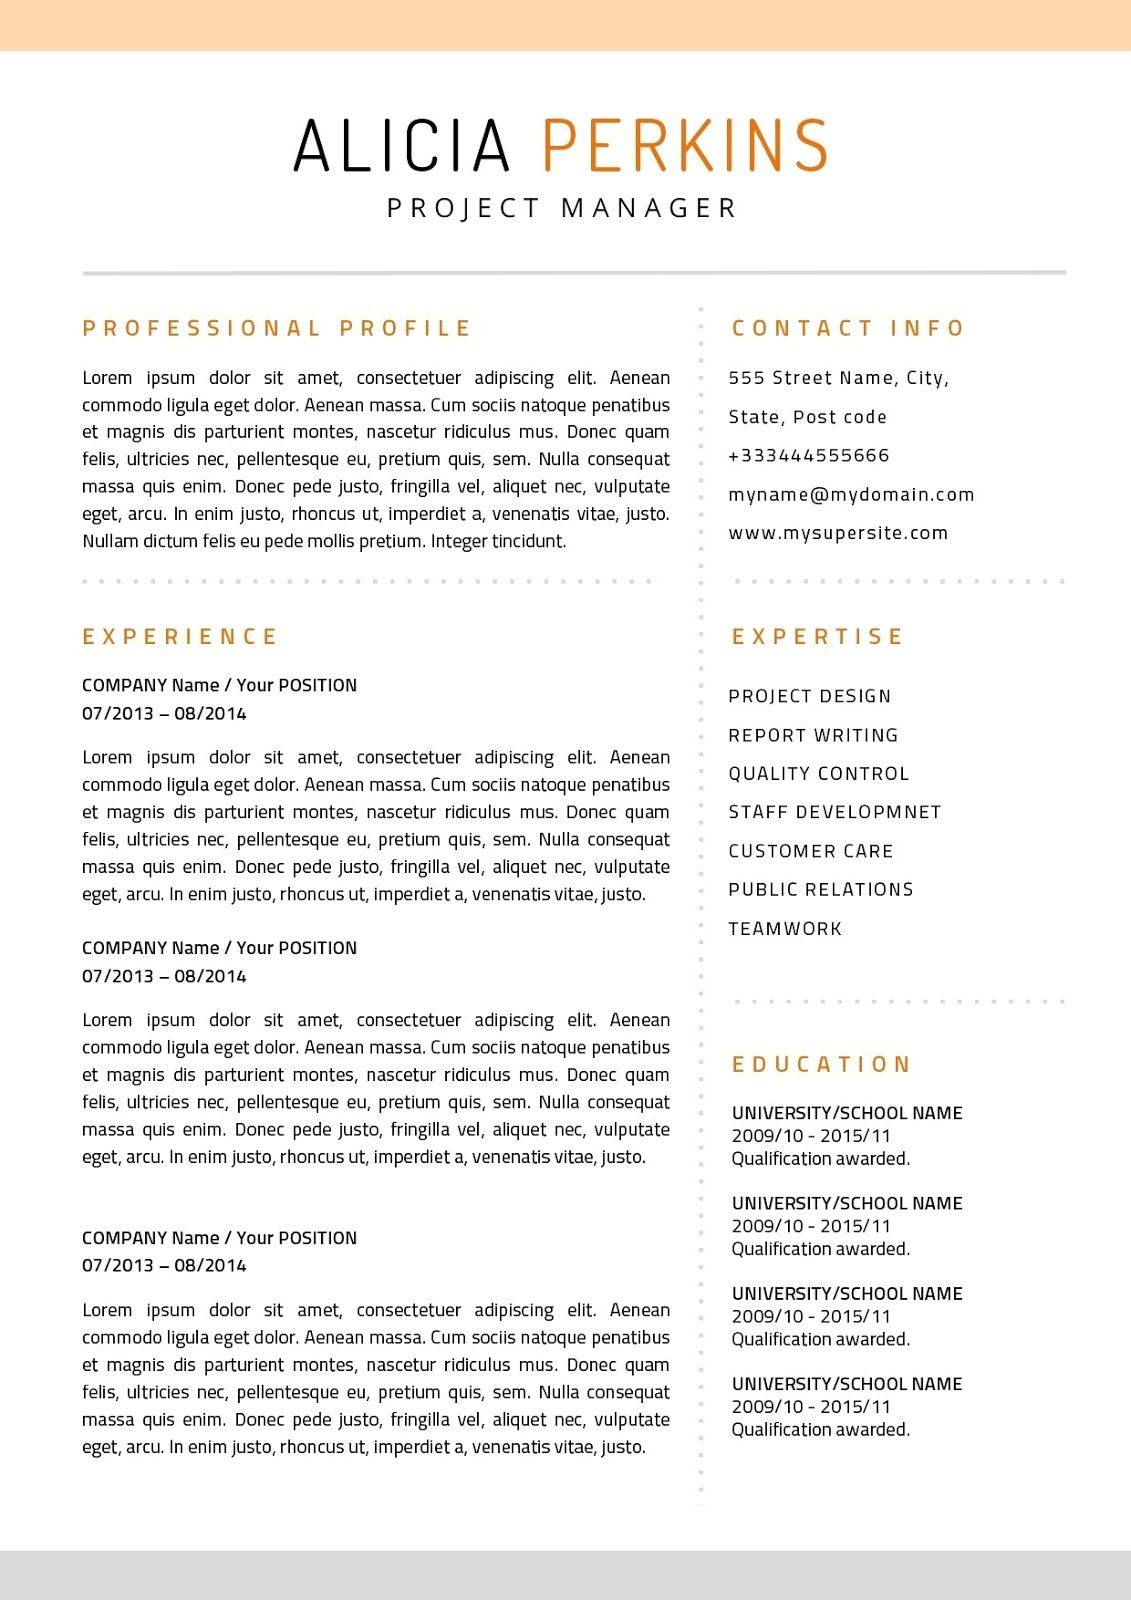 All our free cv templates helped most of the job seekers to. Apple Resume Template Apple Resume Templates For Pages Apple Resume Templates Free Apple Res Resume Templates Best Resume Template Downloadable Resume Template